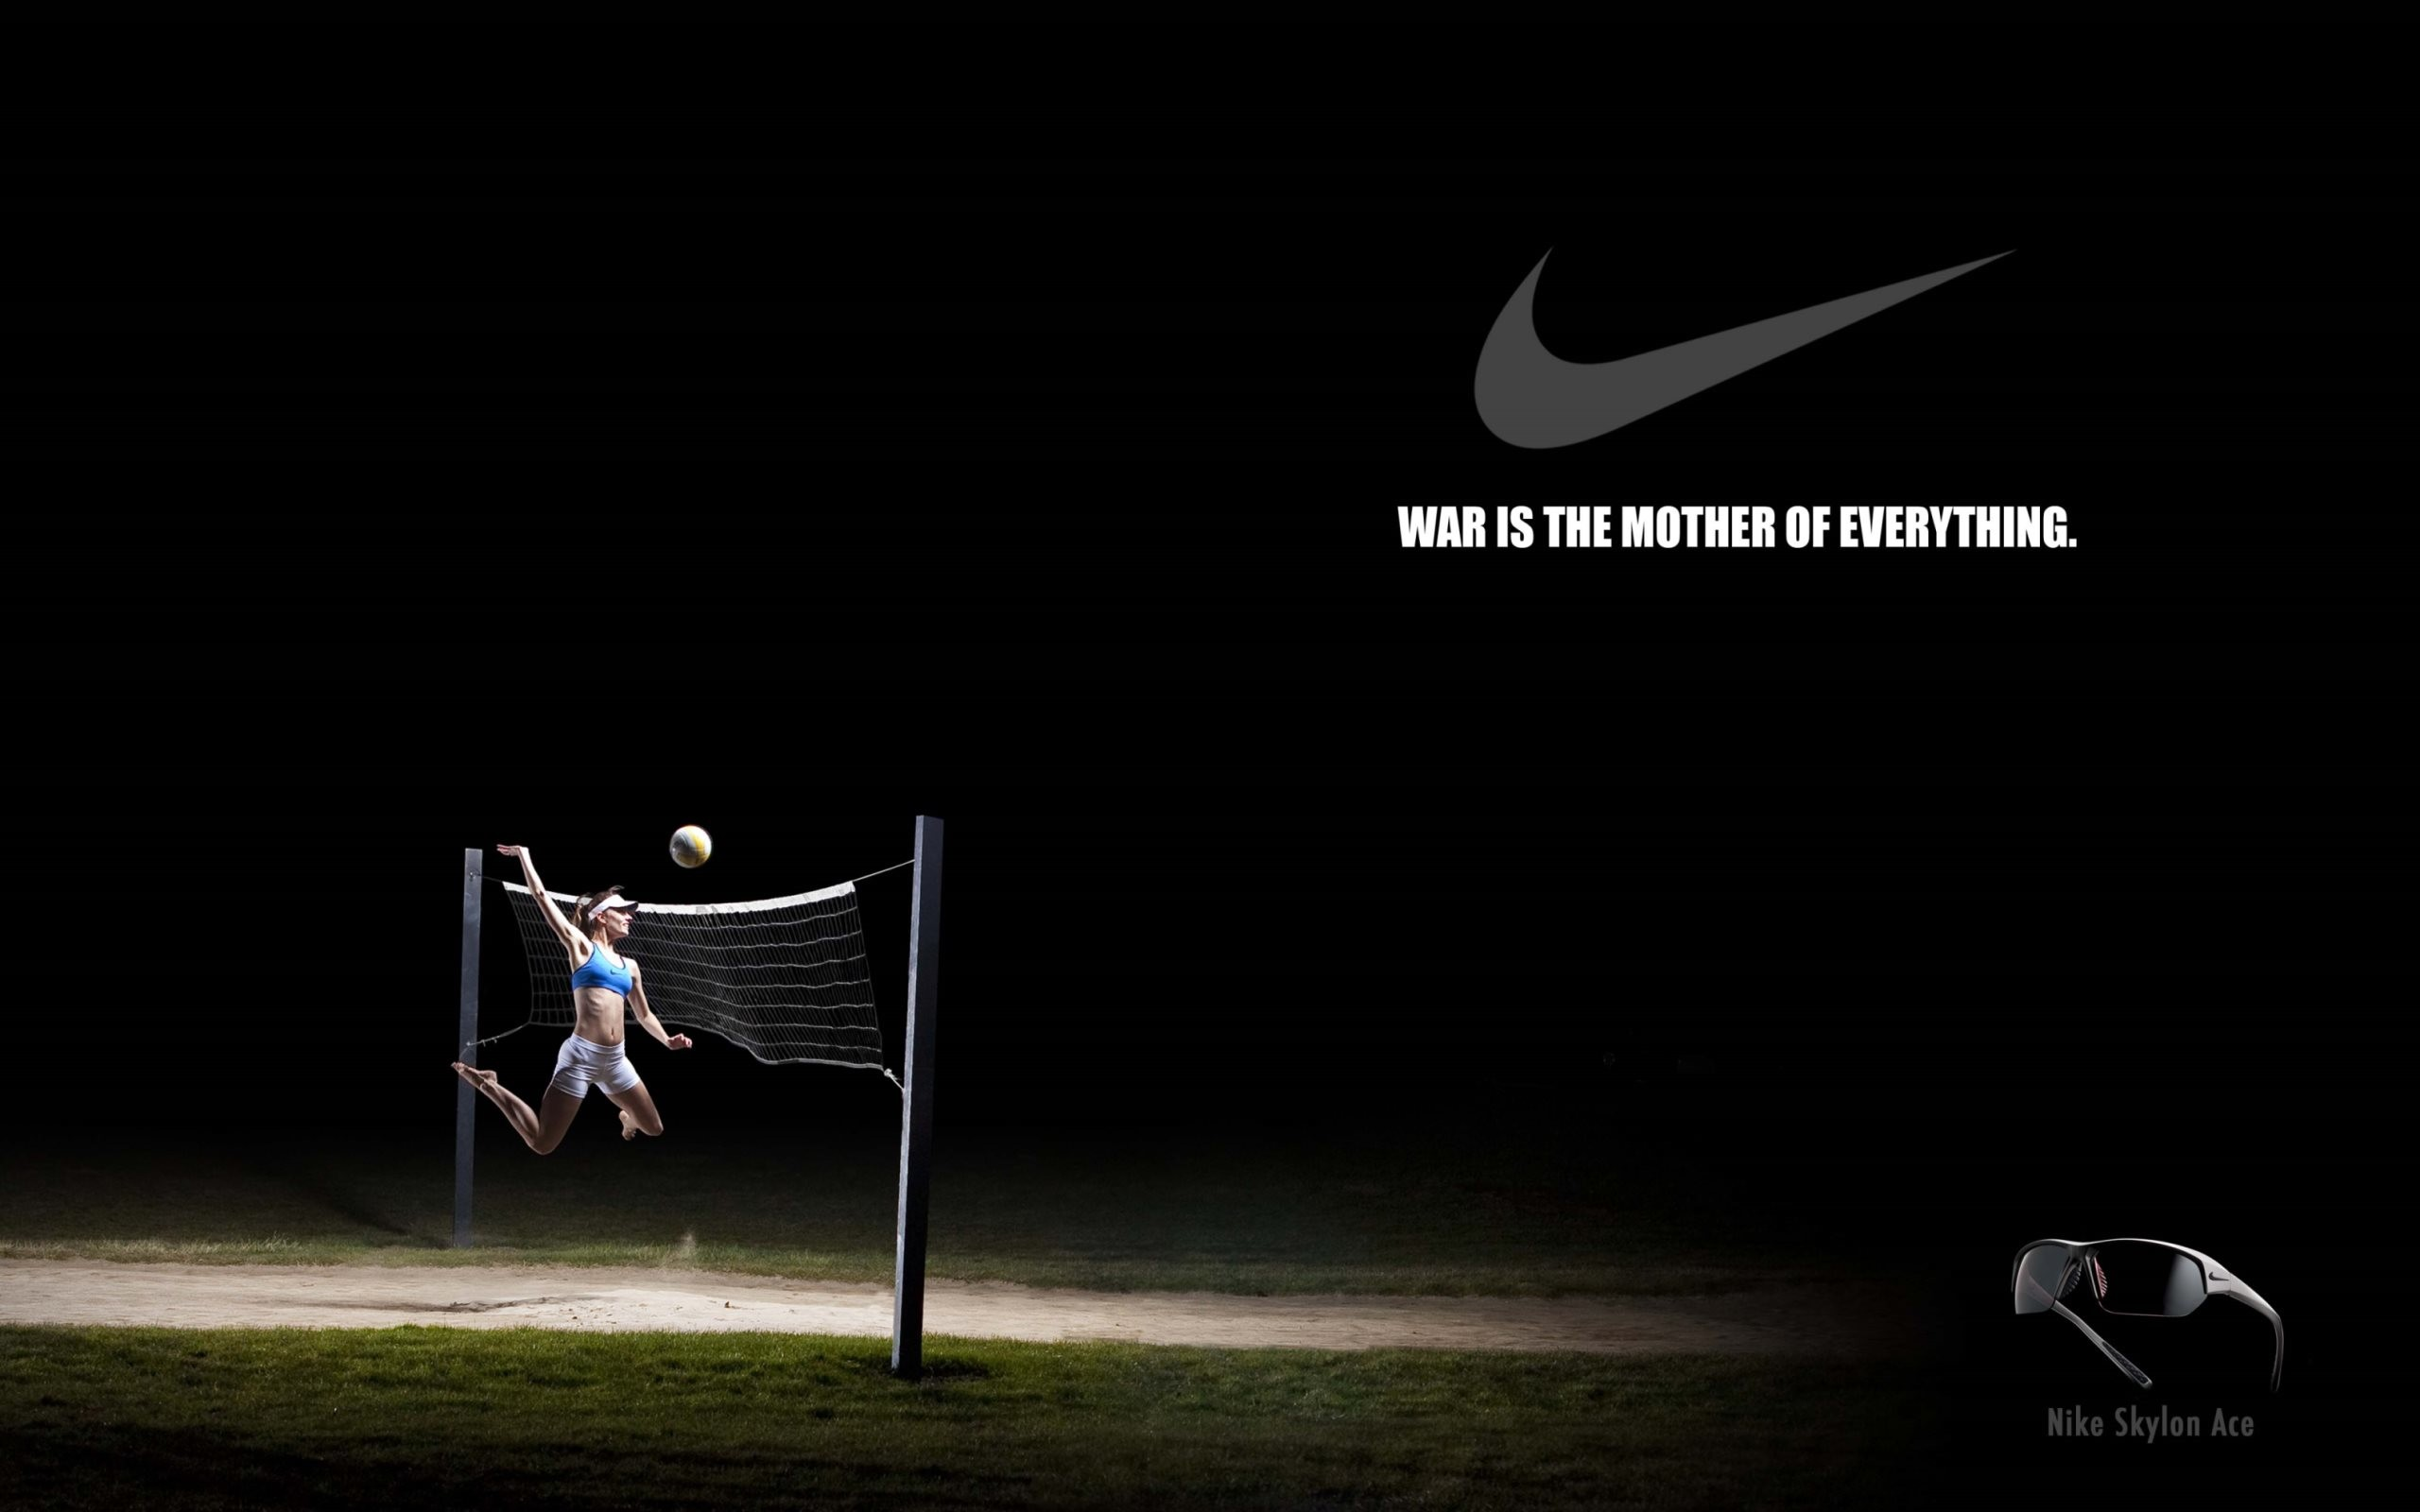 Nike Sport Wallpaper 4k: Nike Wallpaper HD 1080p (75+ Images